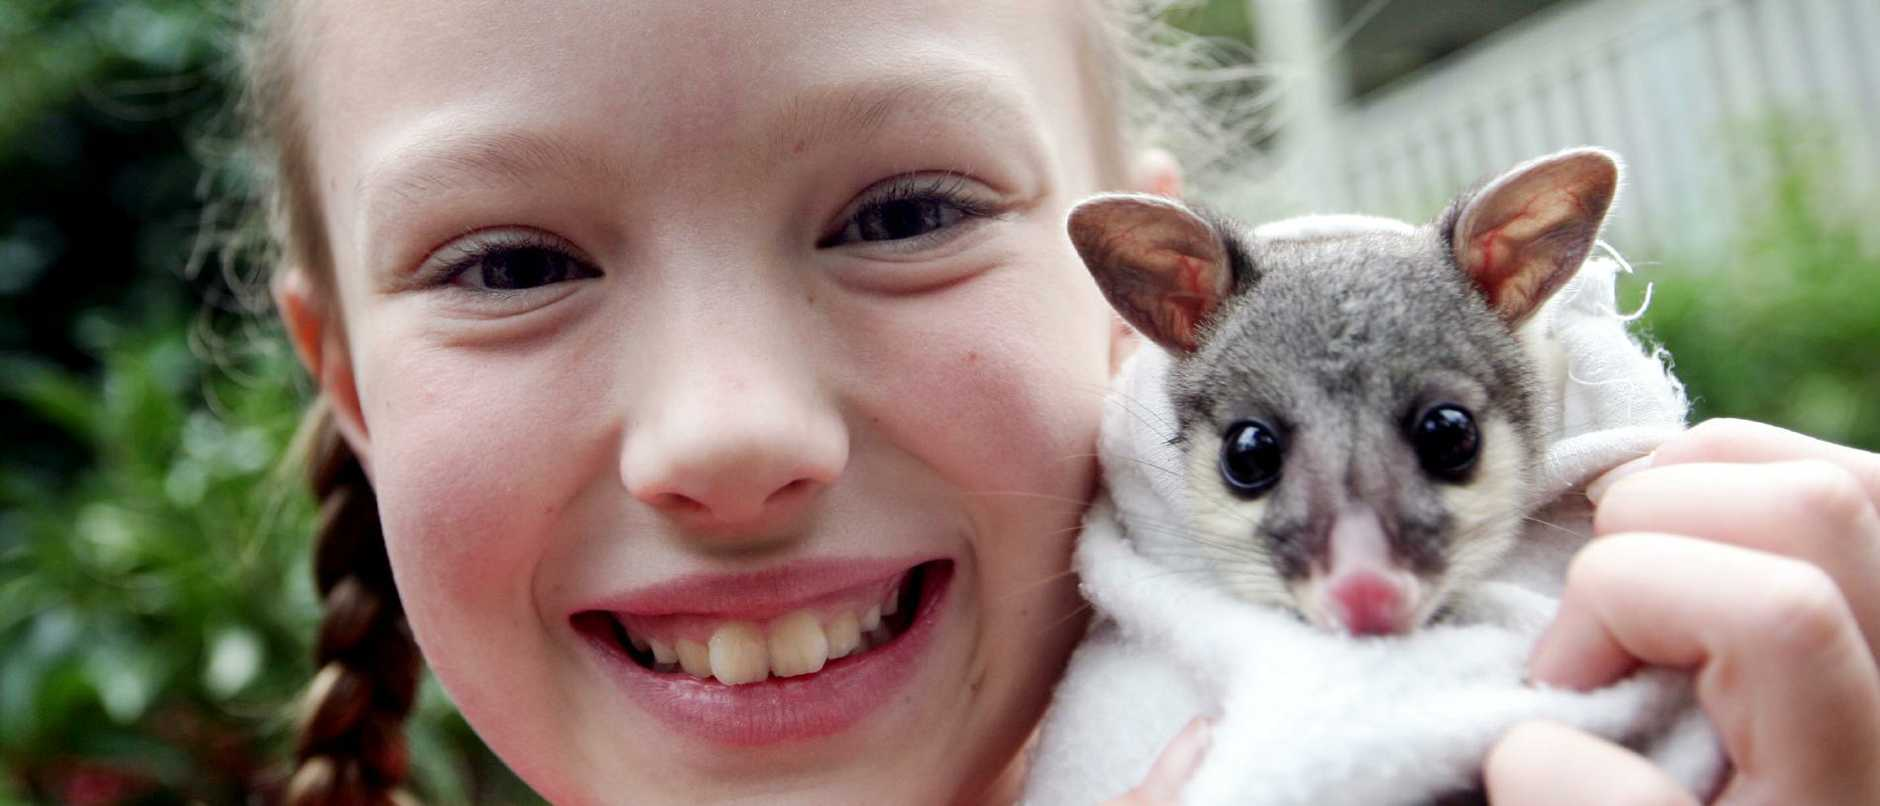 Jasmine Rasmussen had always had a passion for the environment, pictured at 10 years old with a 5-month-old brush tail possum.